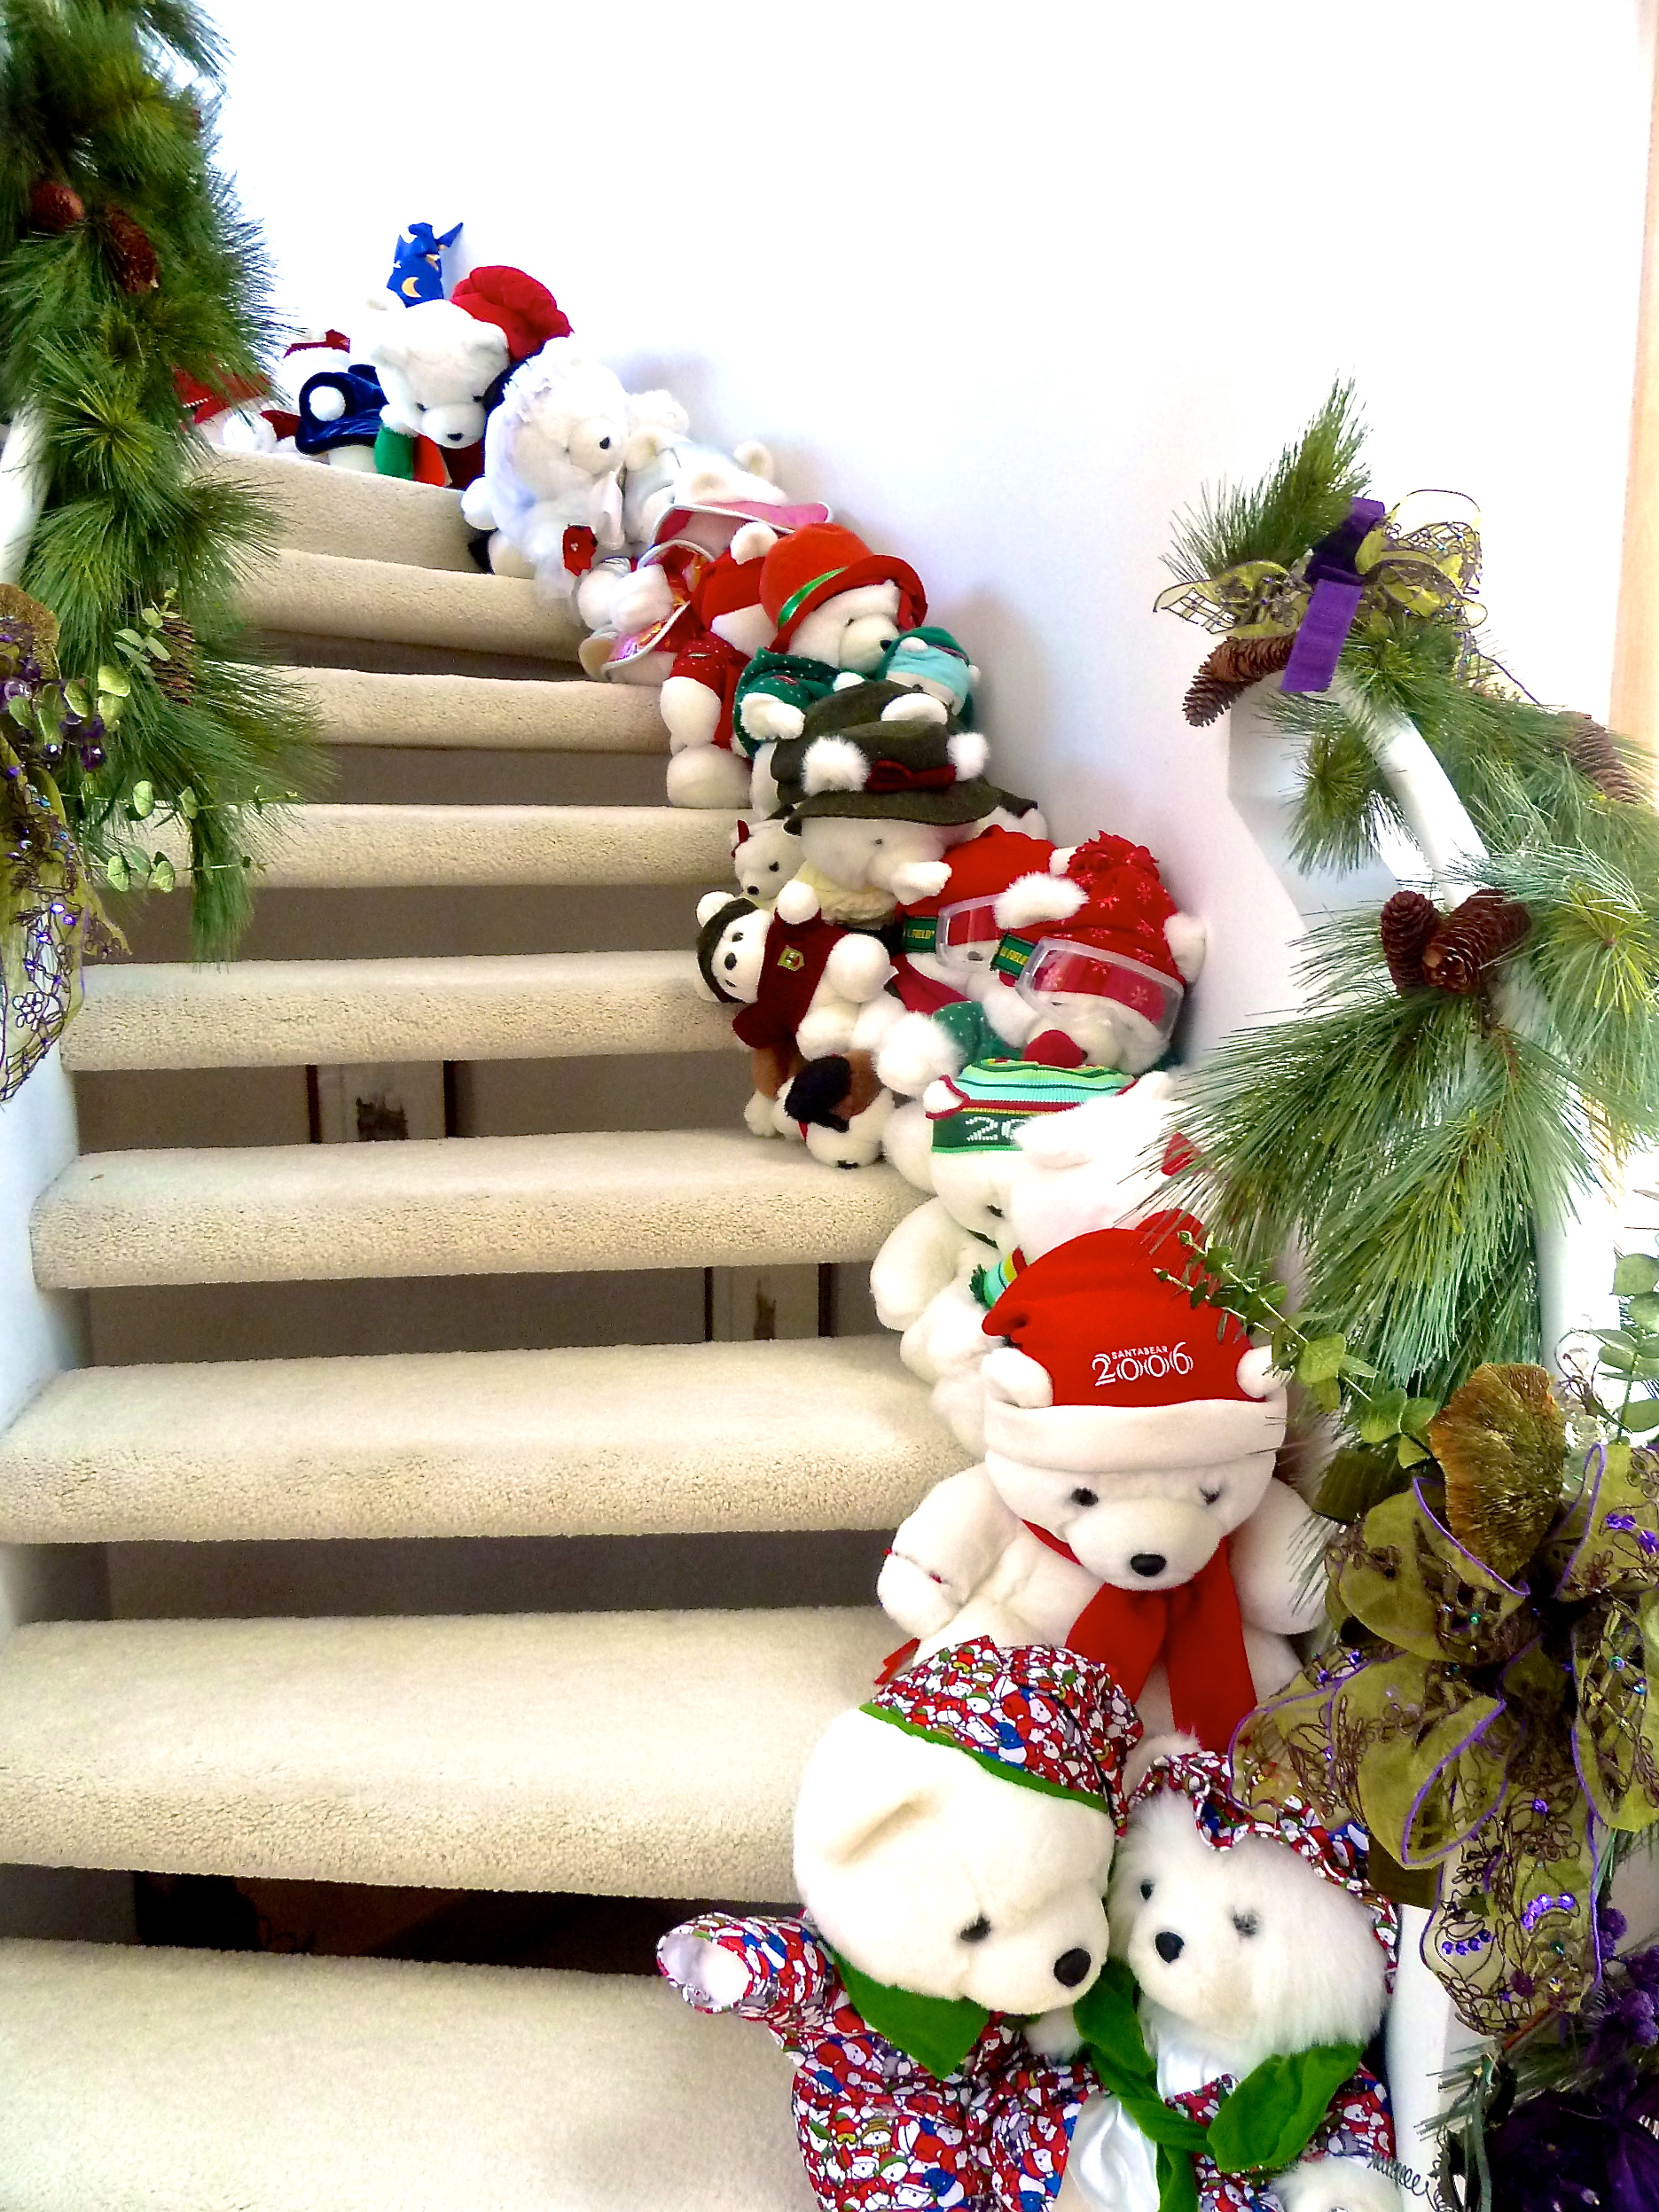 Banisters, Boughs, Bows and Bears oh my! This Santa Bear collection makes kids of all ages smile.